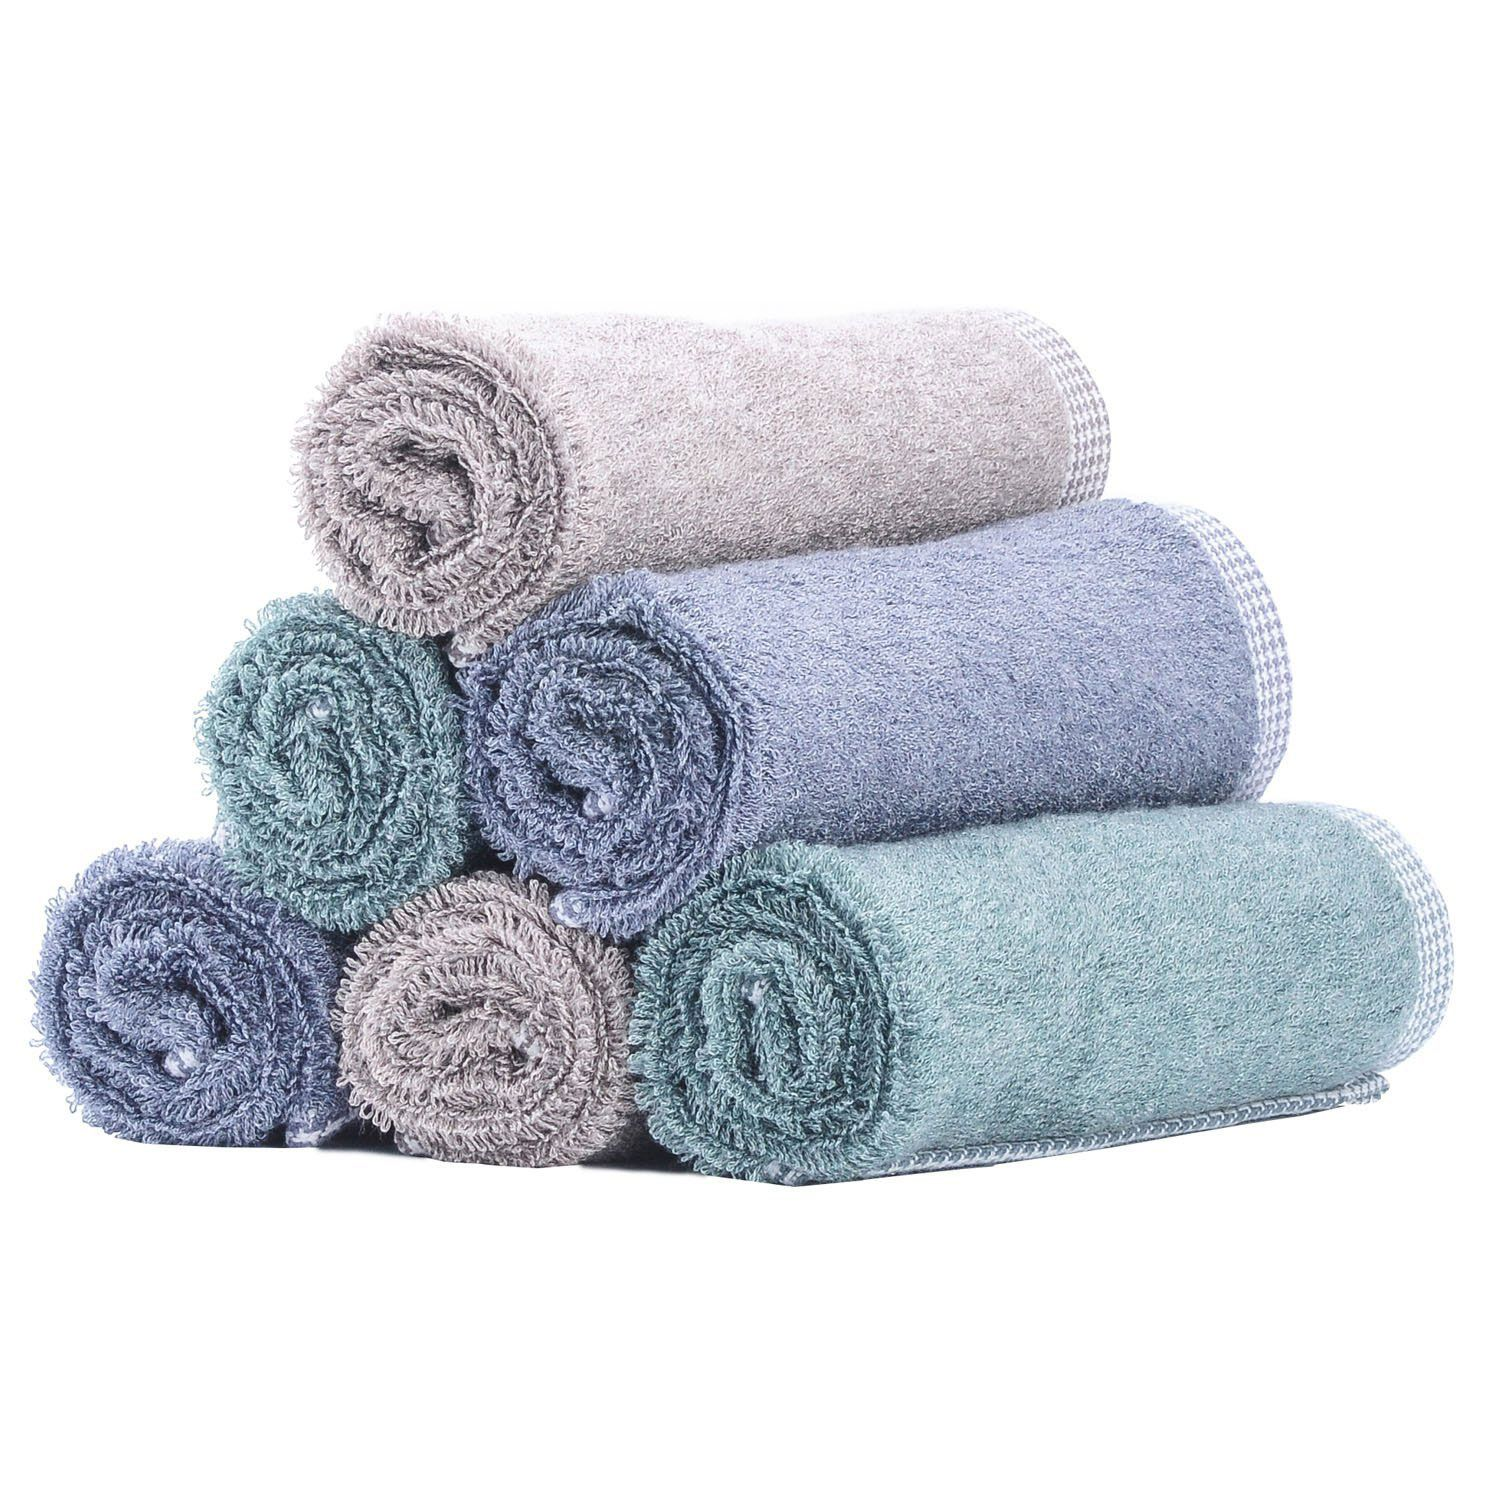 How To Clean And Care For Bamboo Clothes And Fabrics